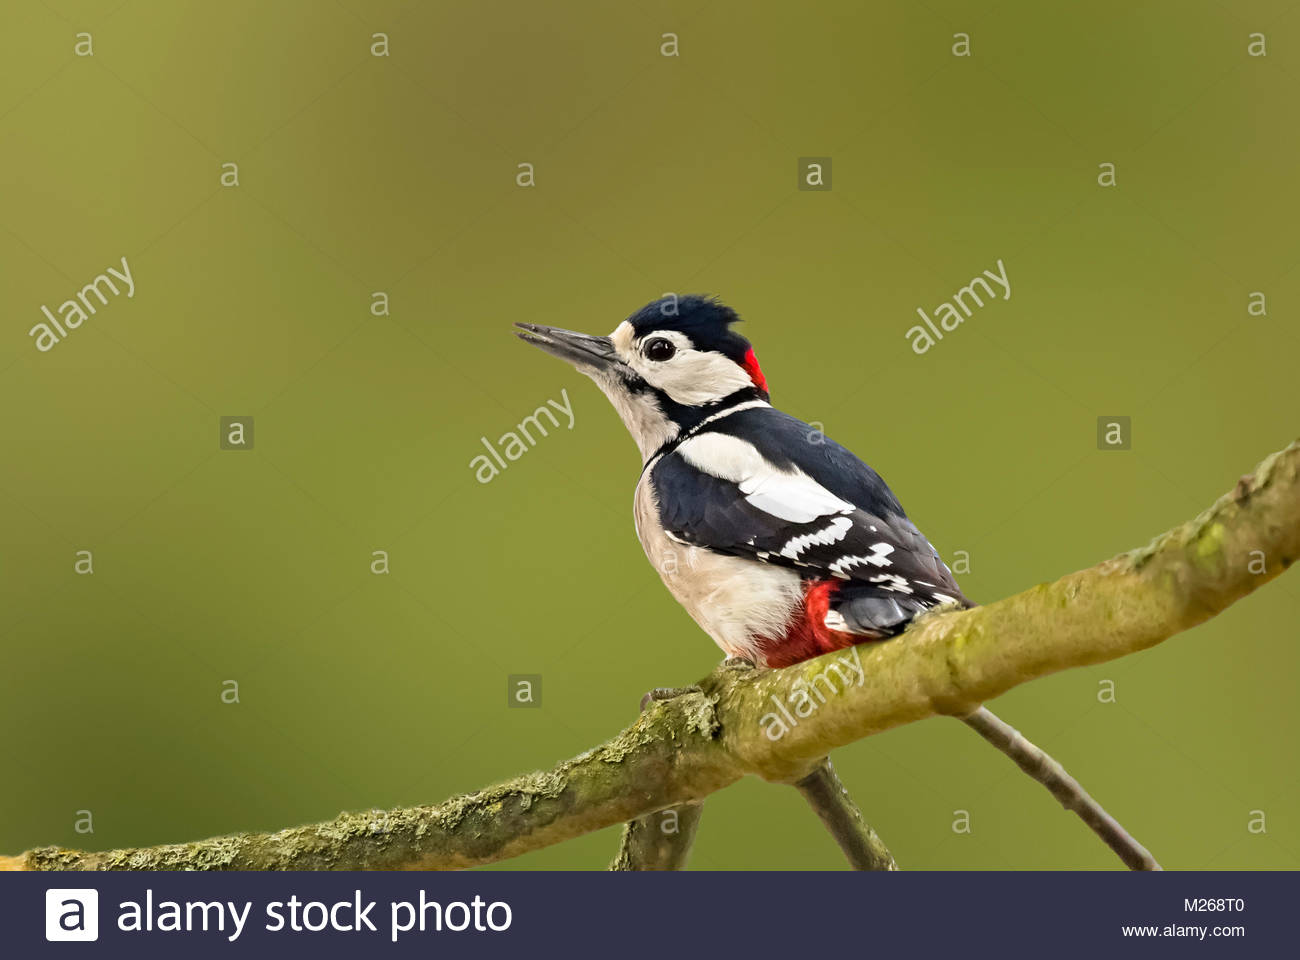 male-great-spotted-woodpecker-dendrocopos-major-perched-on-a-tree-M268T0.jpg